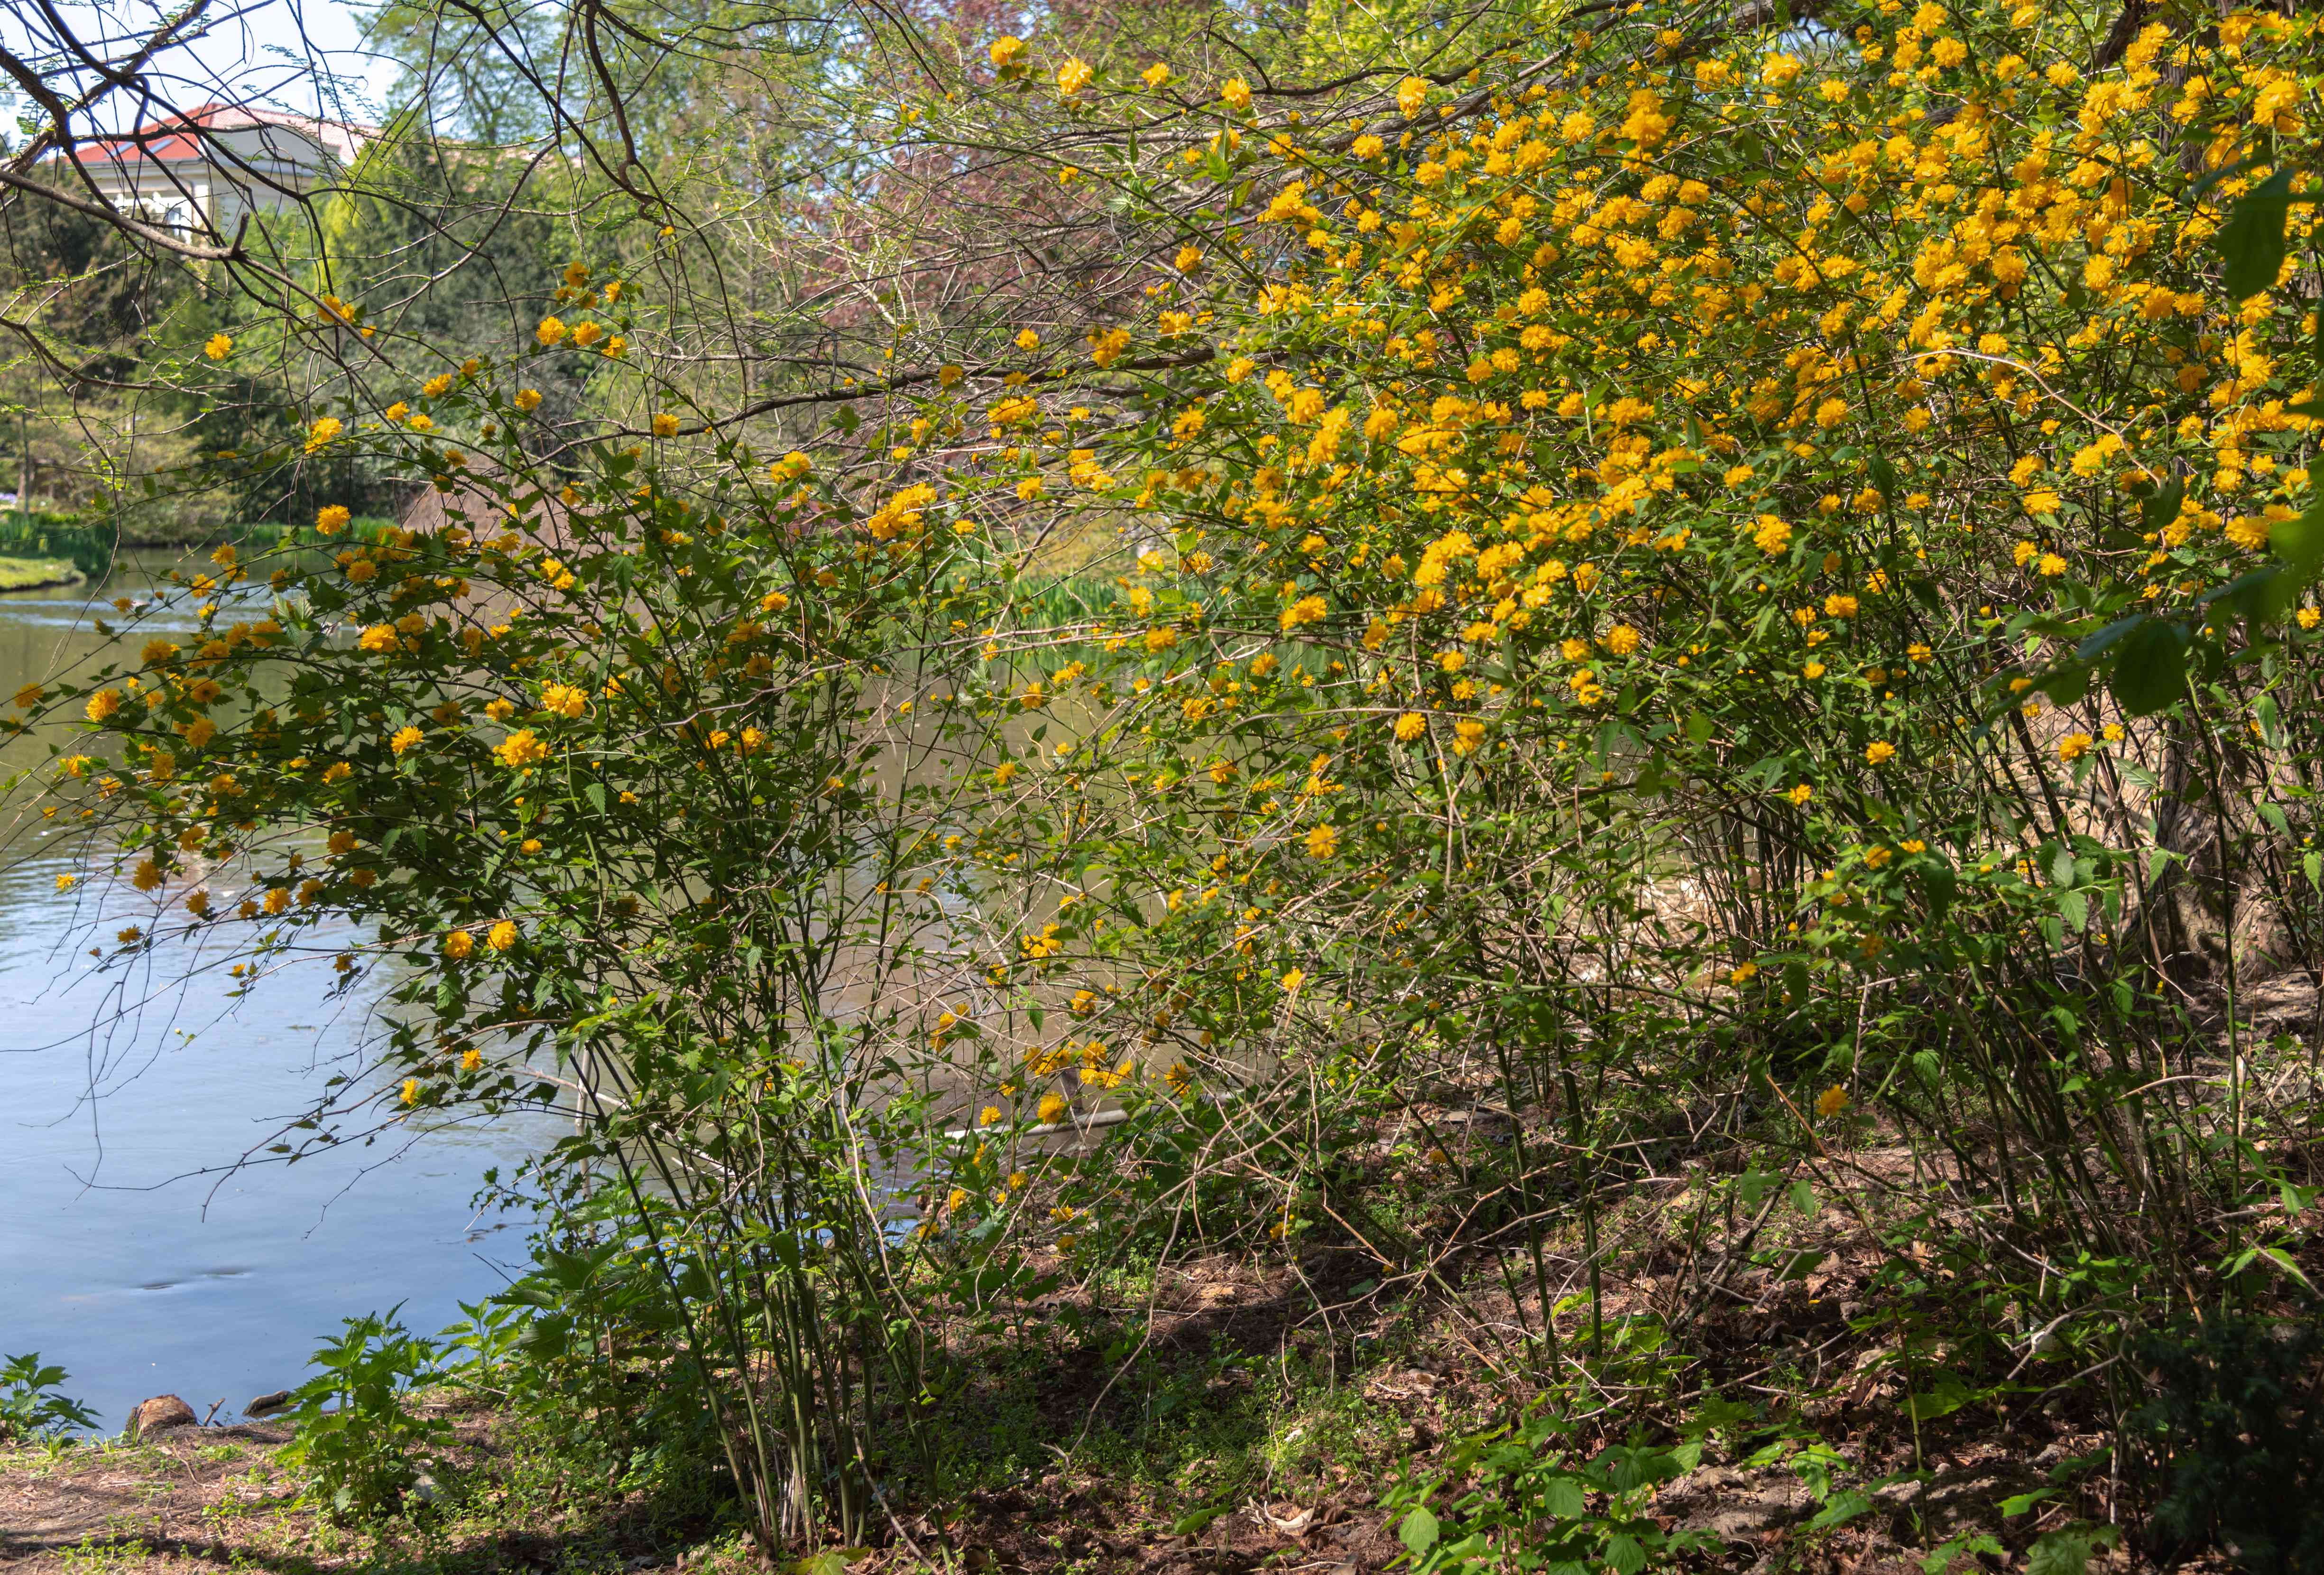 Japanese rose shrub with yellow flowers growing on tall branches next to lake